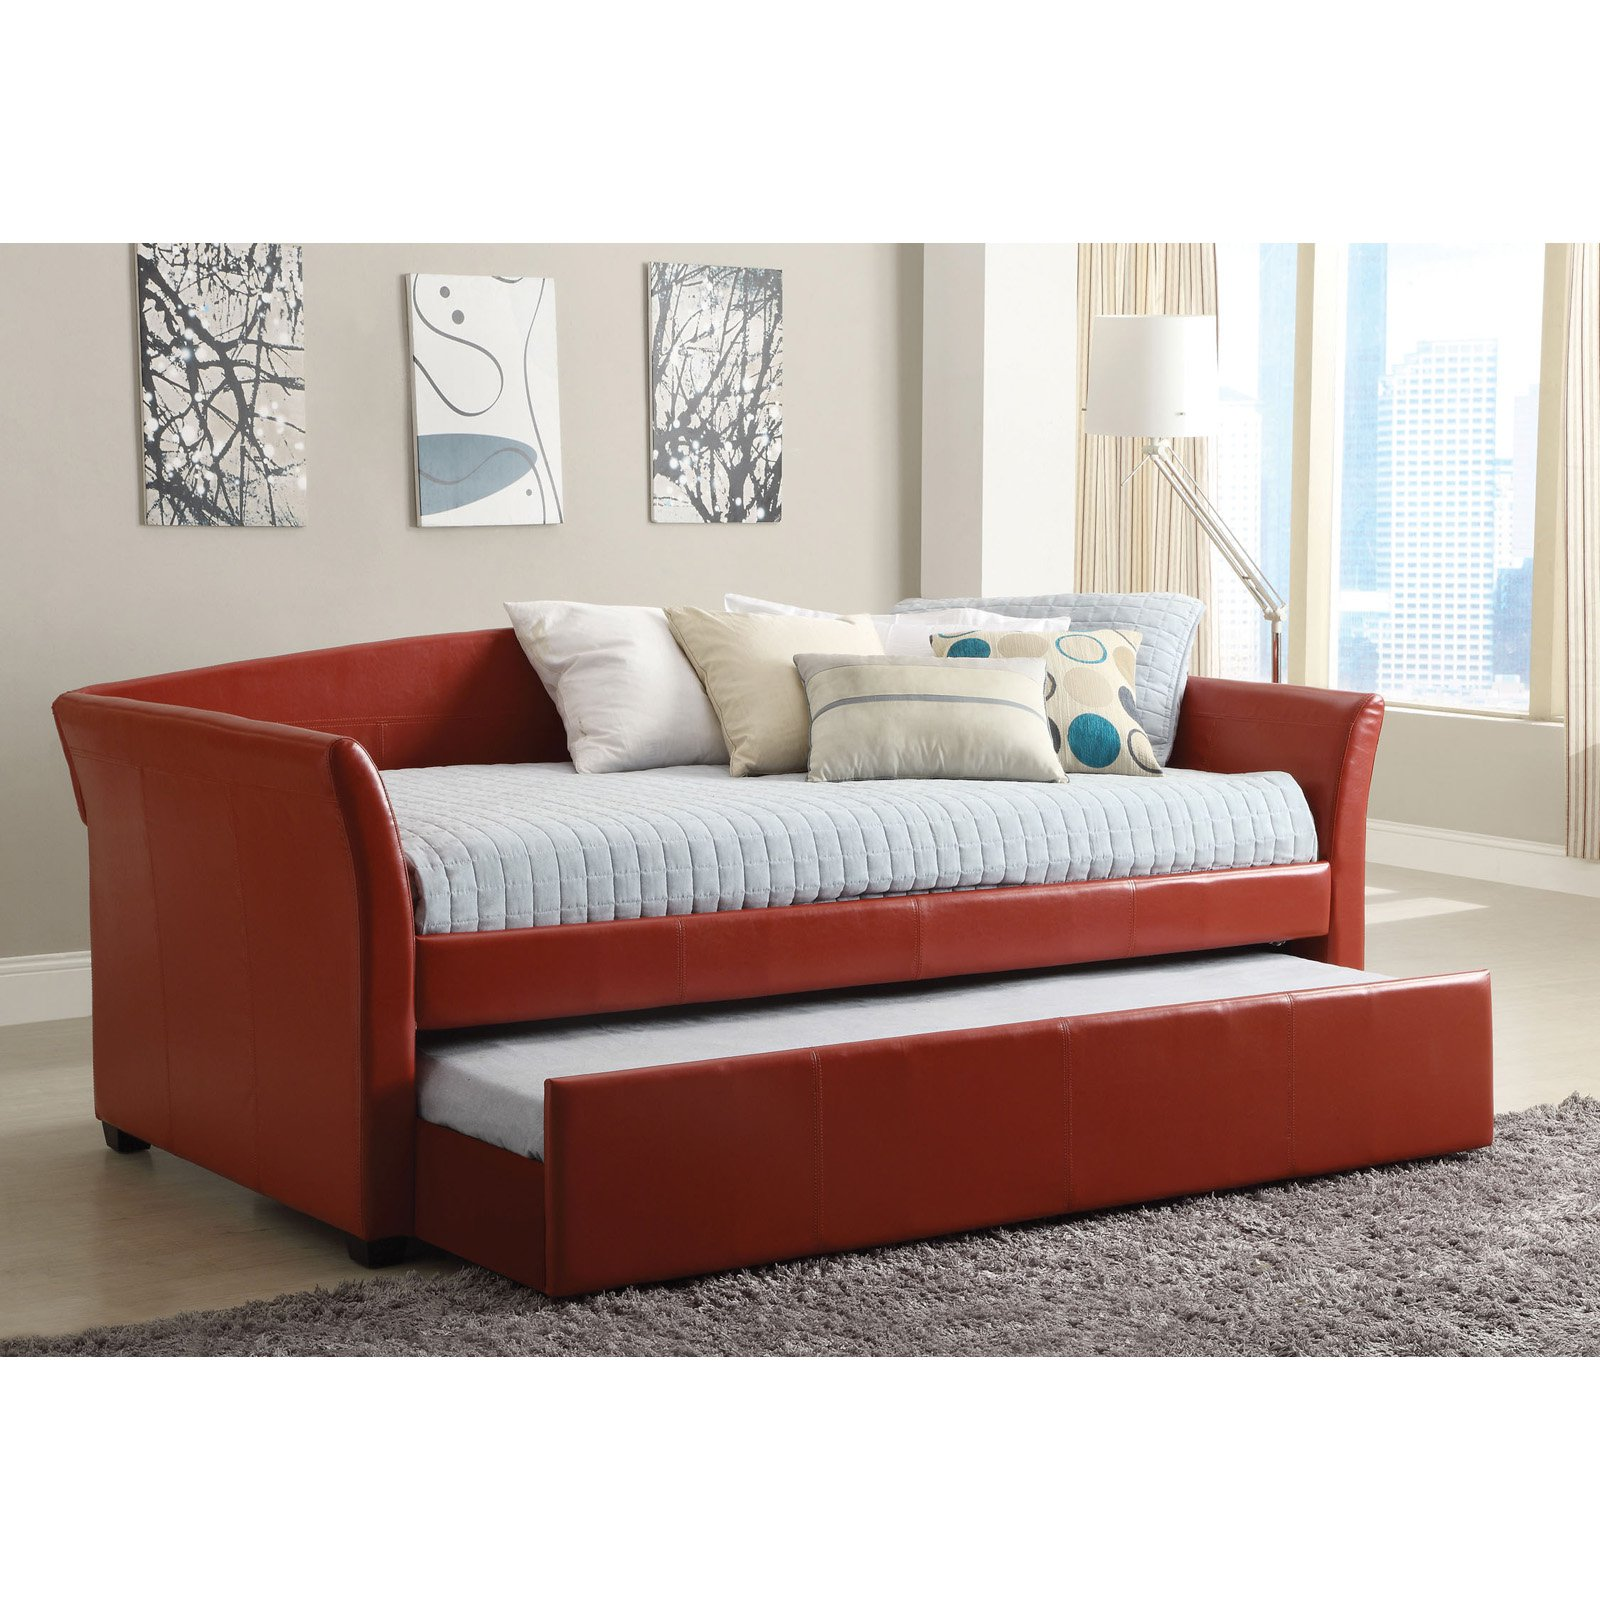 Furniture of america contemporary leatherette upholstered daybed with trundle walmart com